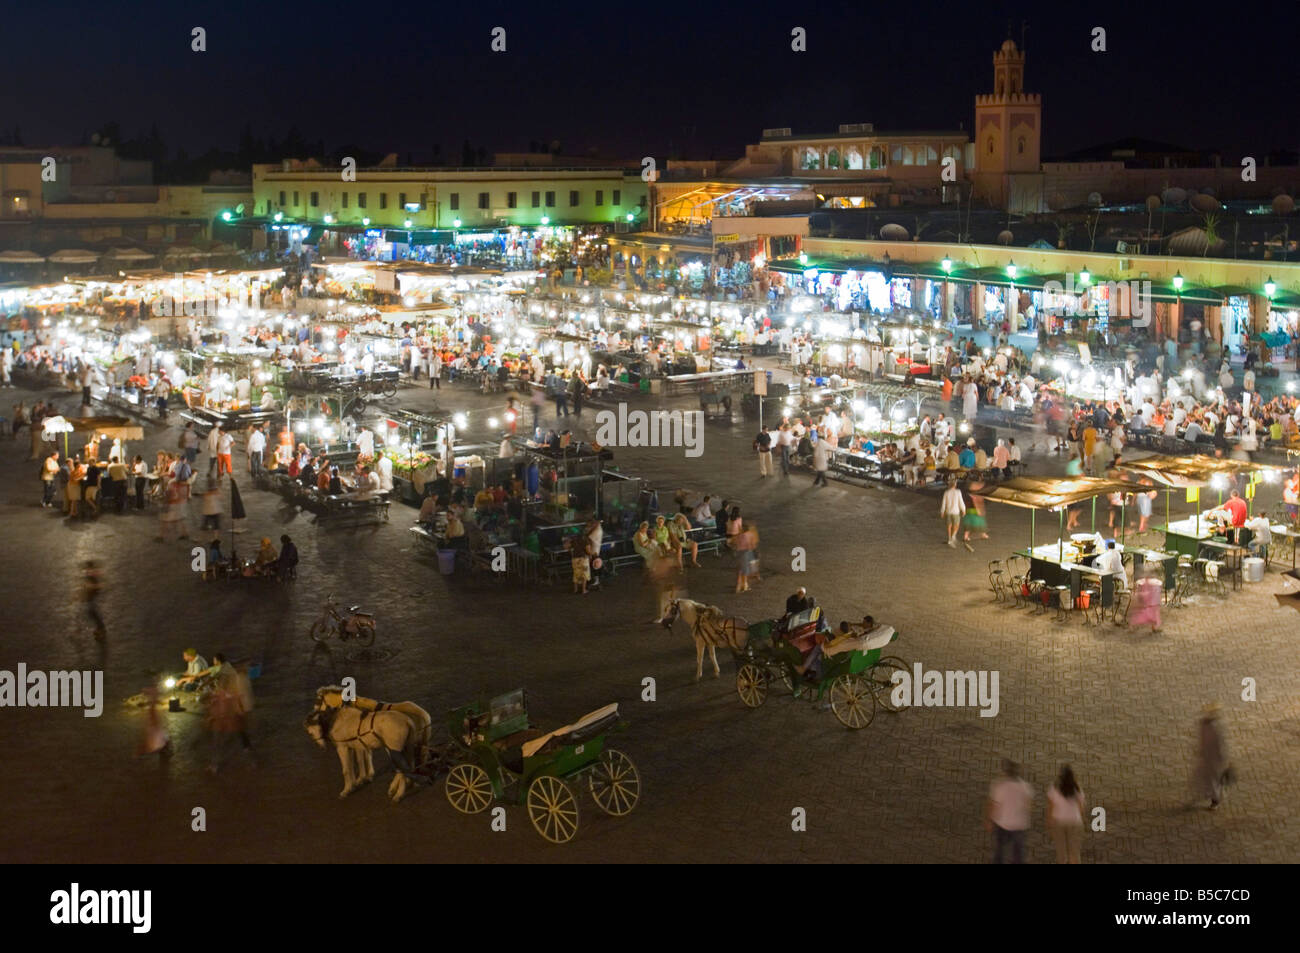 A wide angle aerial view of the busy Djemaa El Fna in Marrakesh at night with slow shutter speed for motion blur. - Stock Image